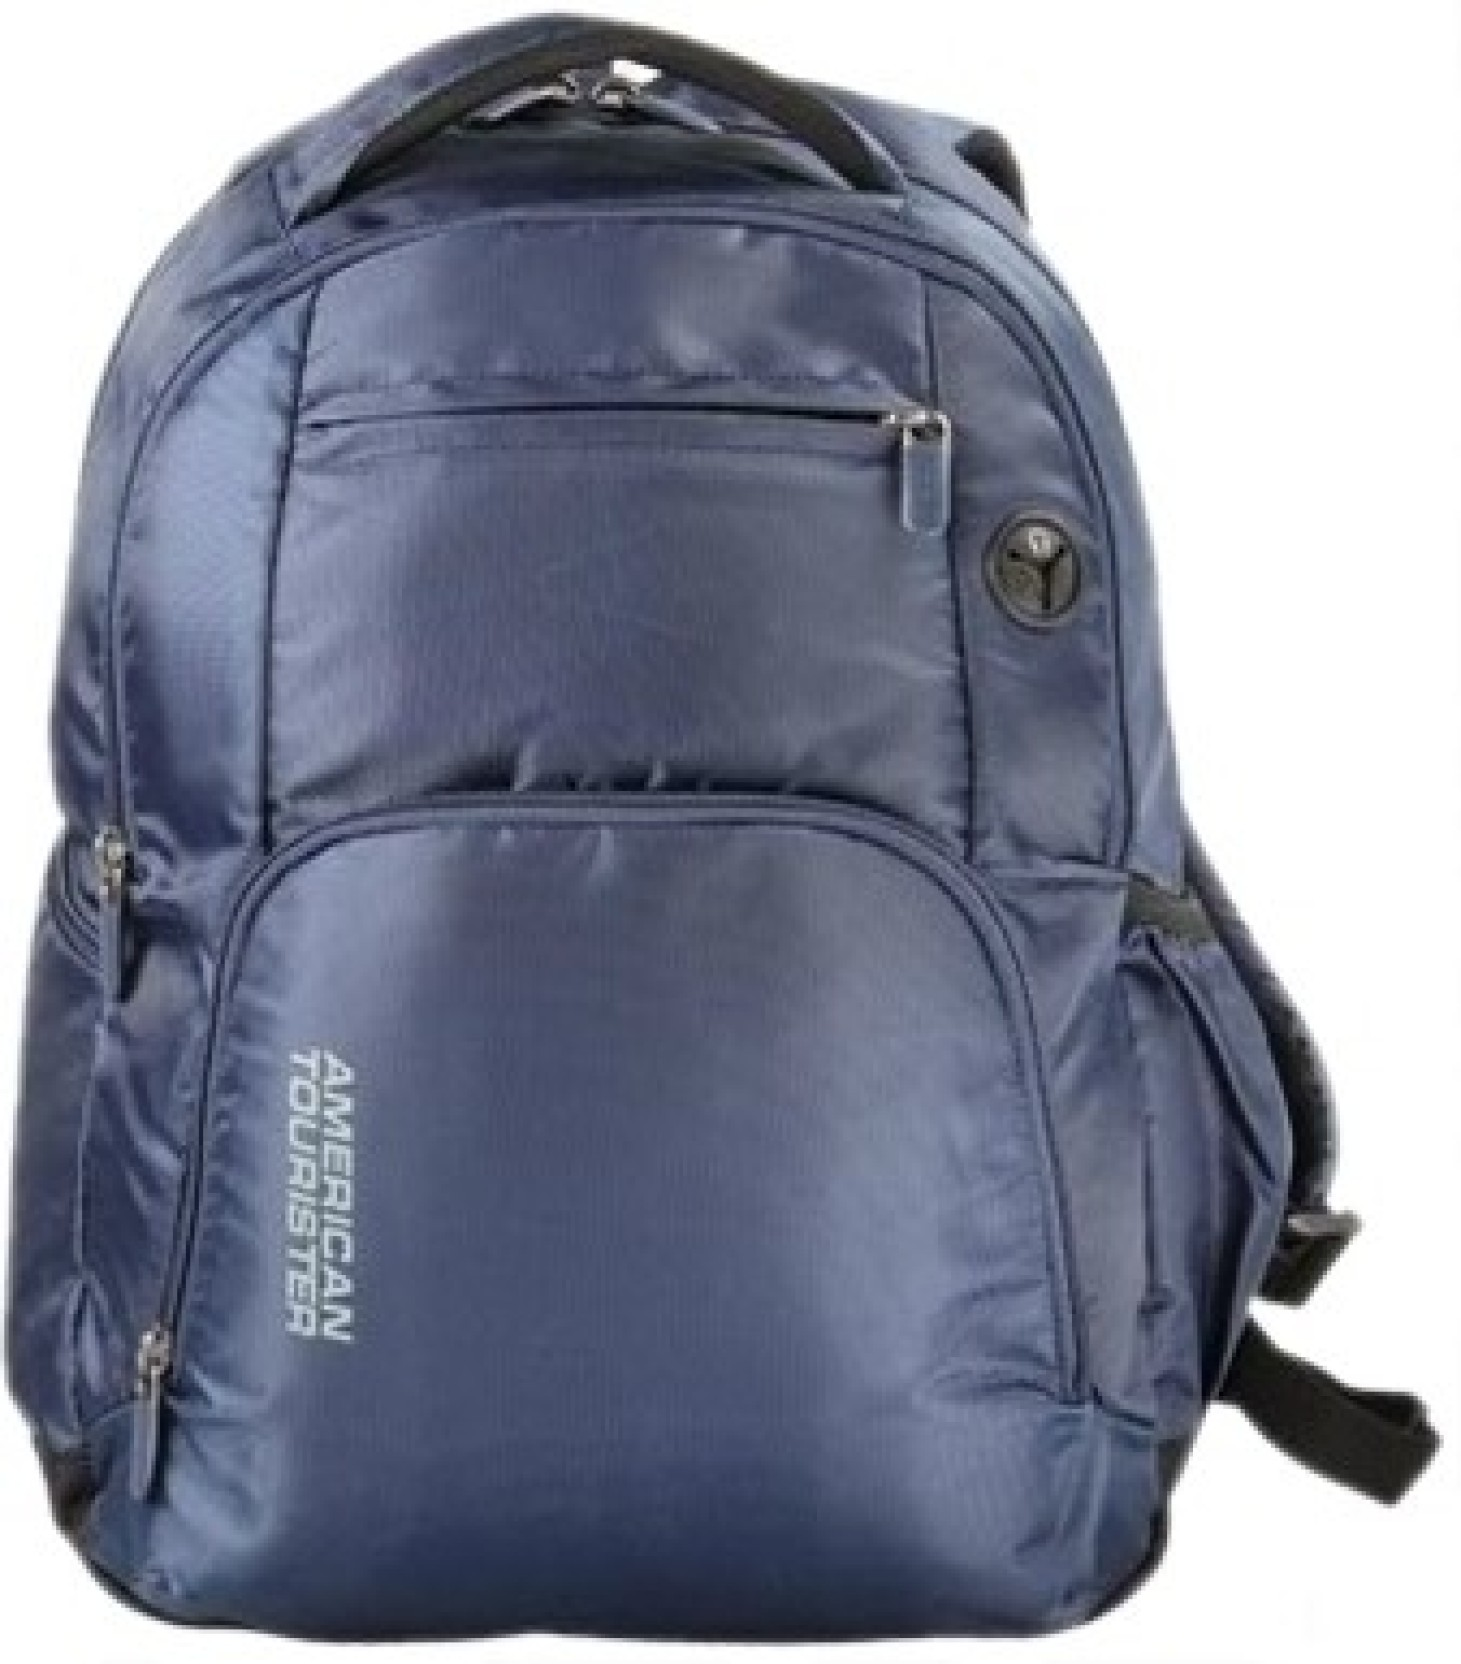 American tourister laptop backpack blue price in india - American tourister office bags ...